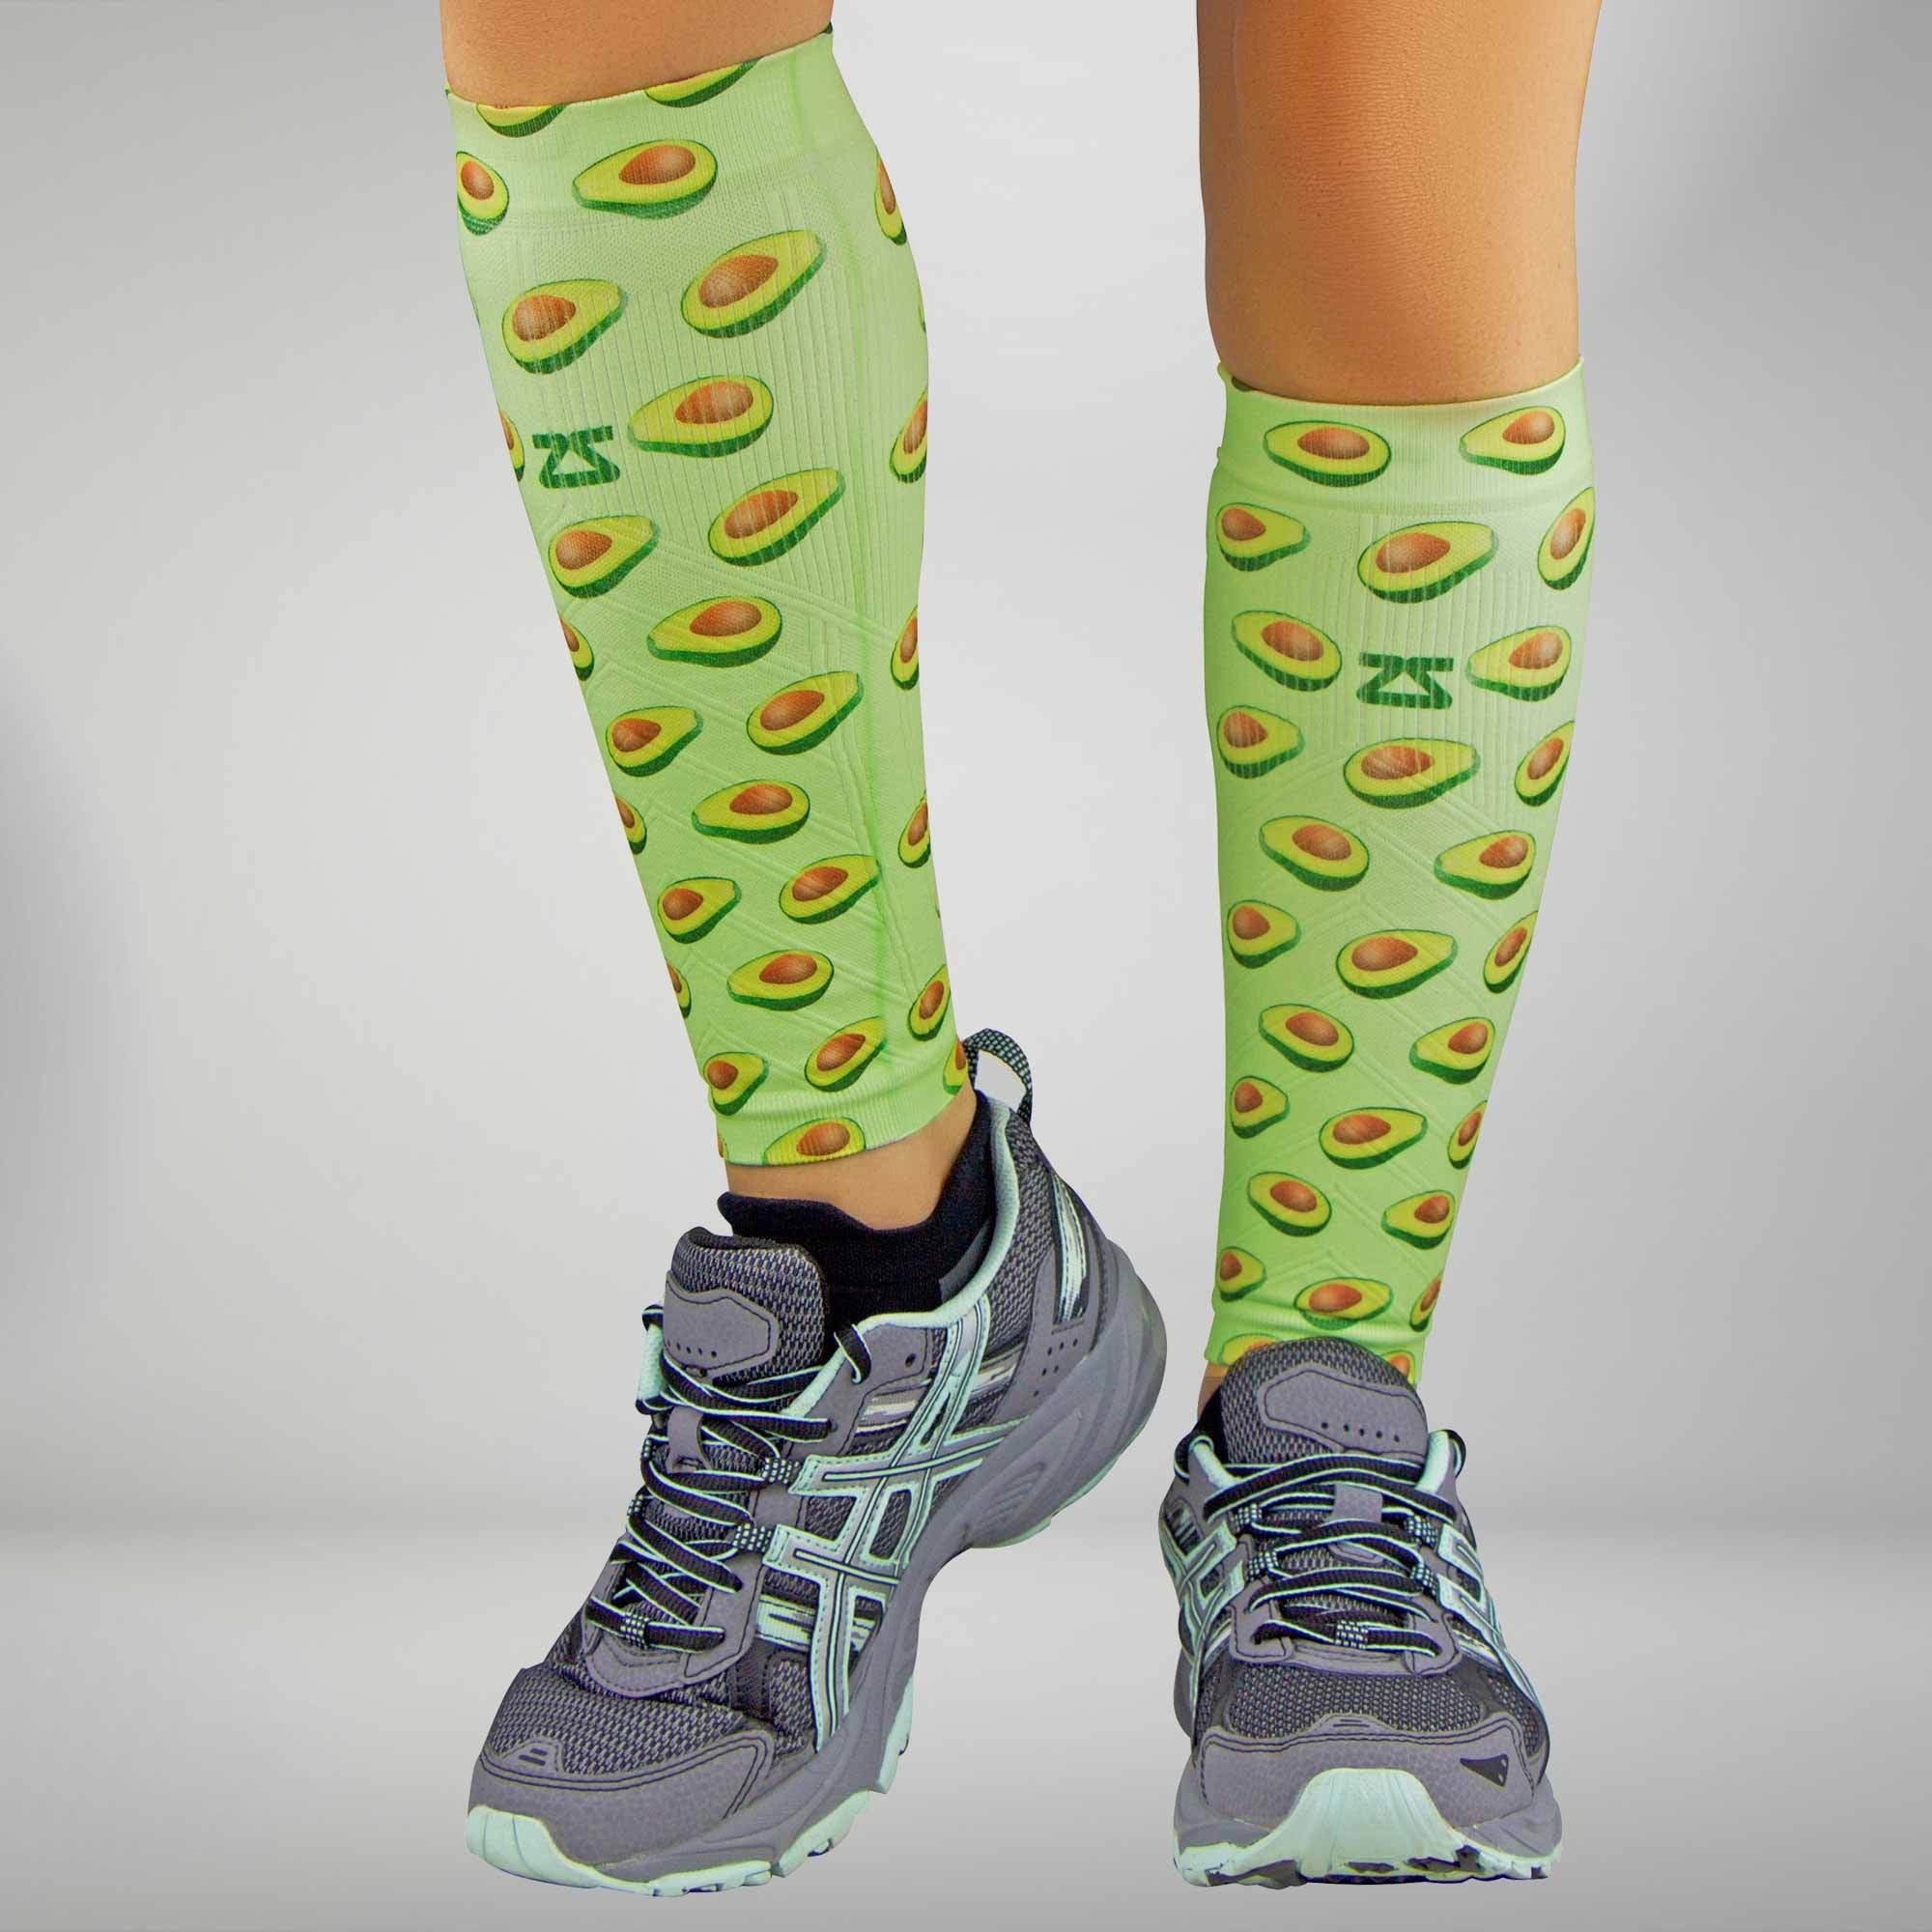 How to zensah wear compression leg sleeves new photo